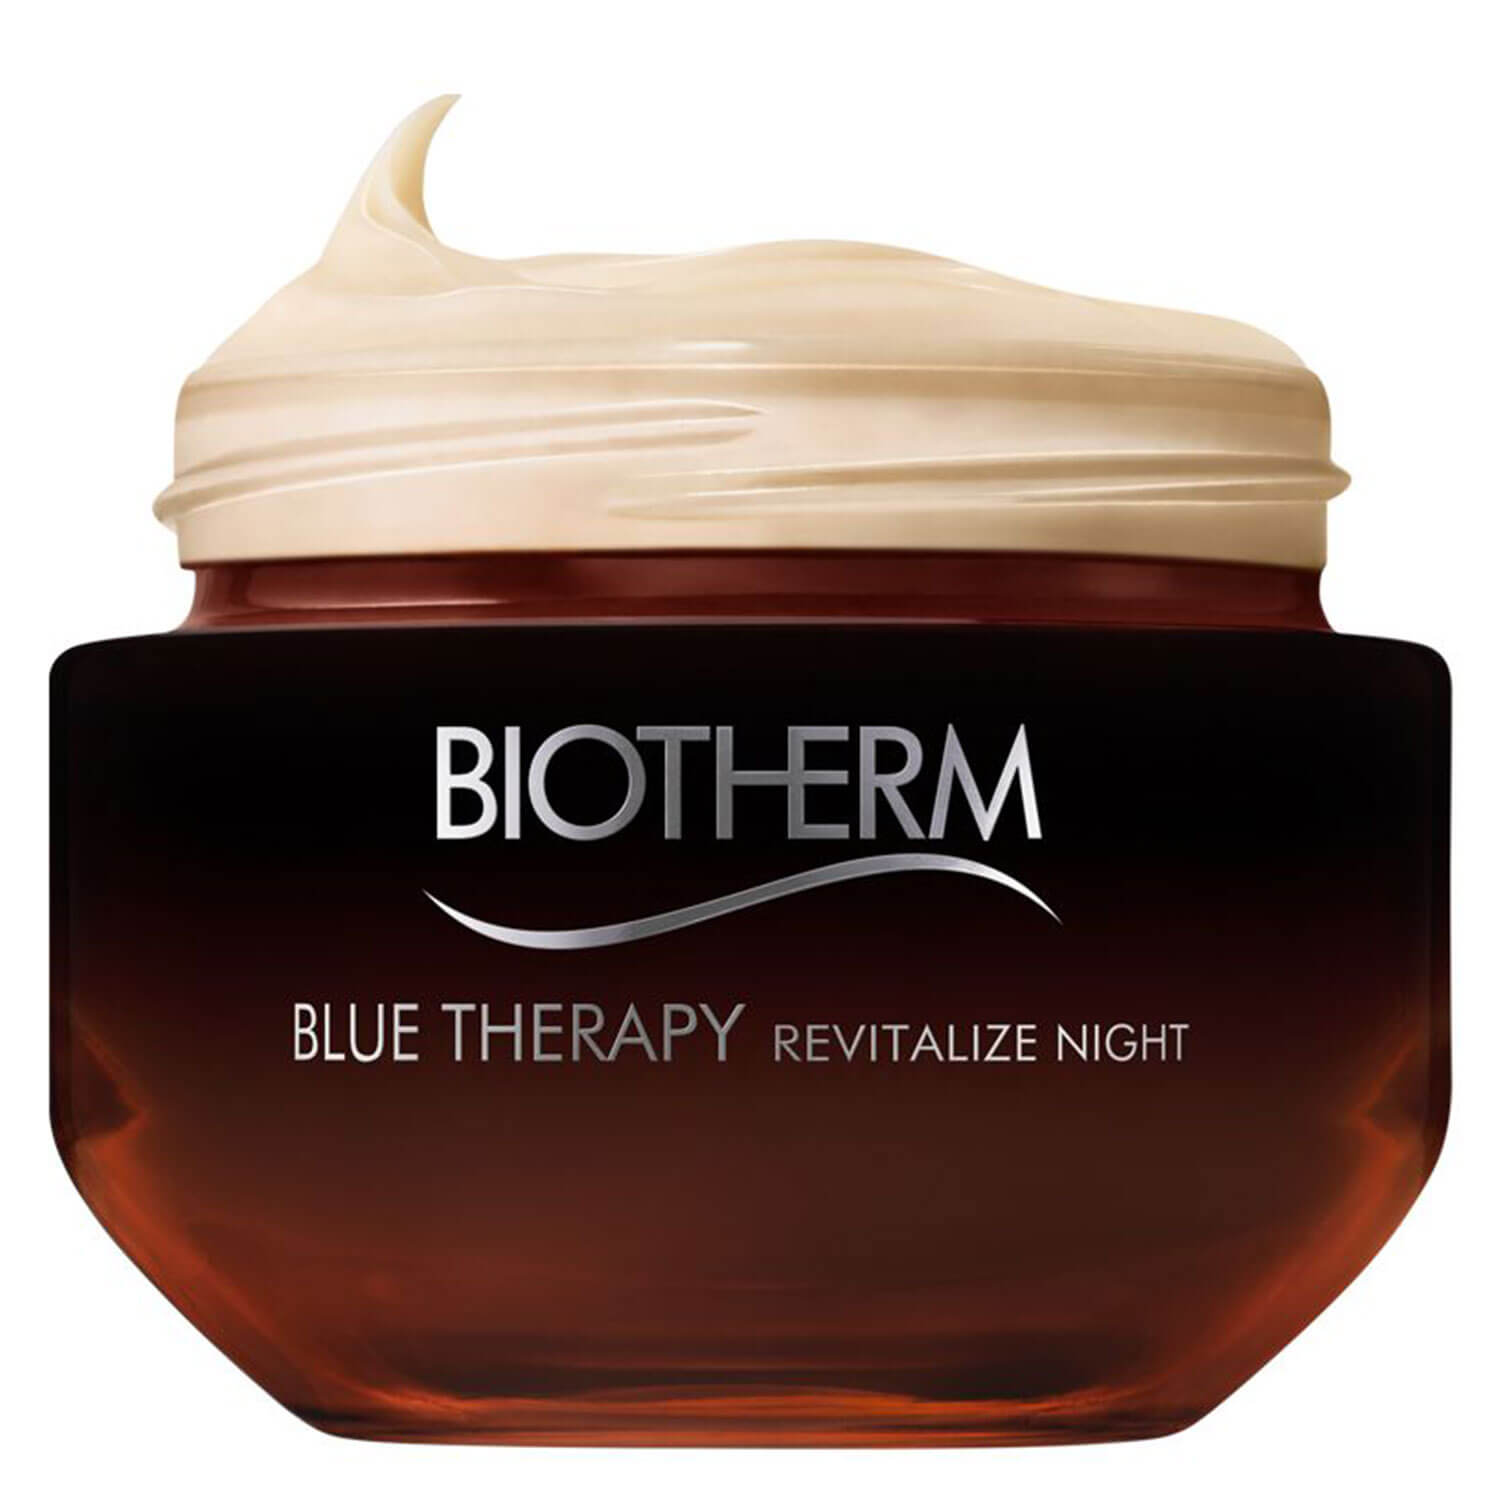 Blue Therapy - Revitalize Night